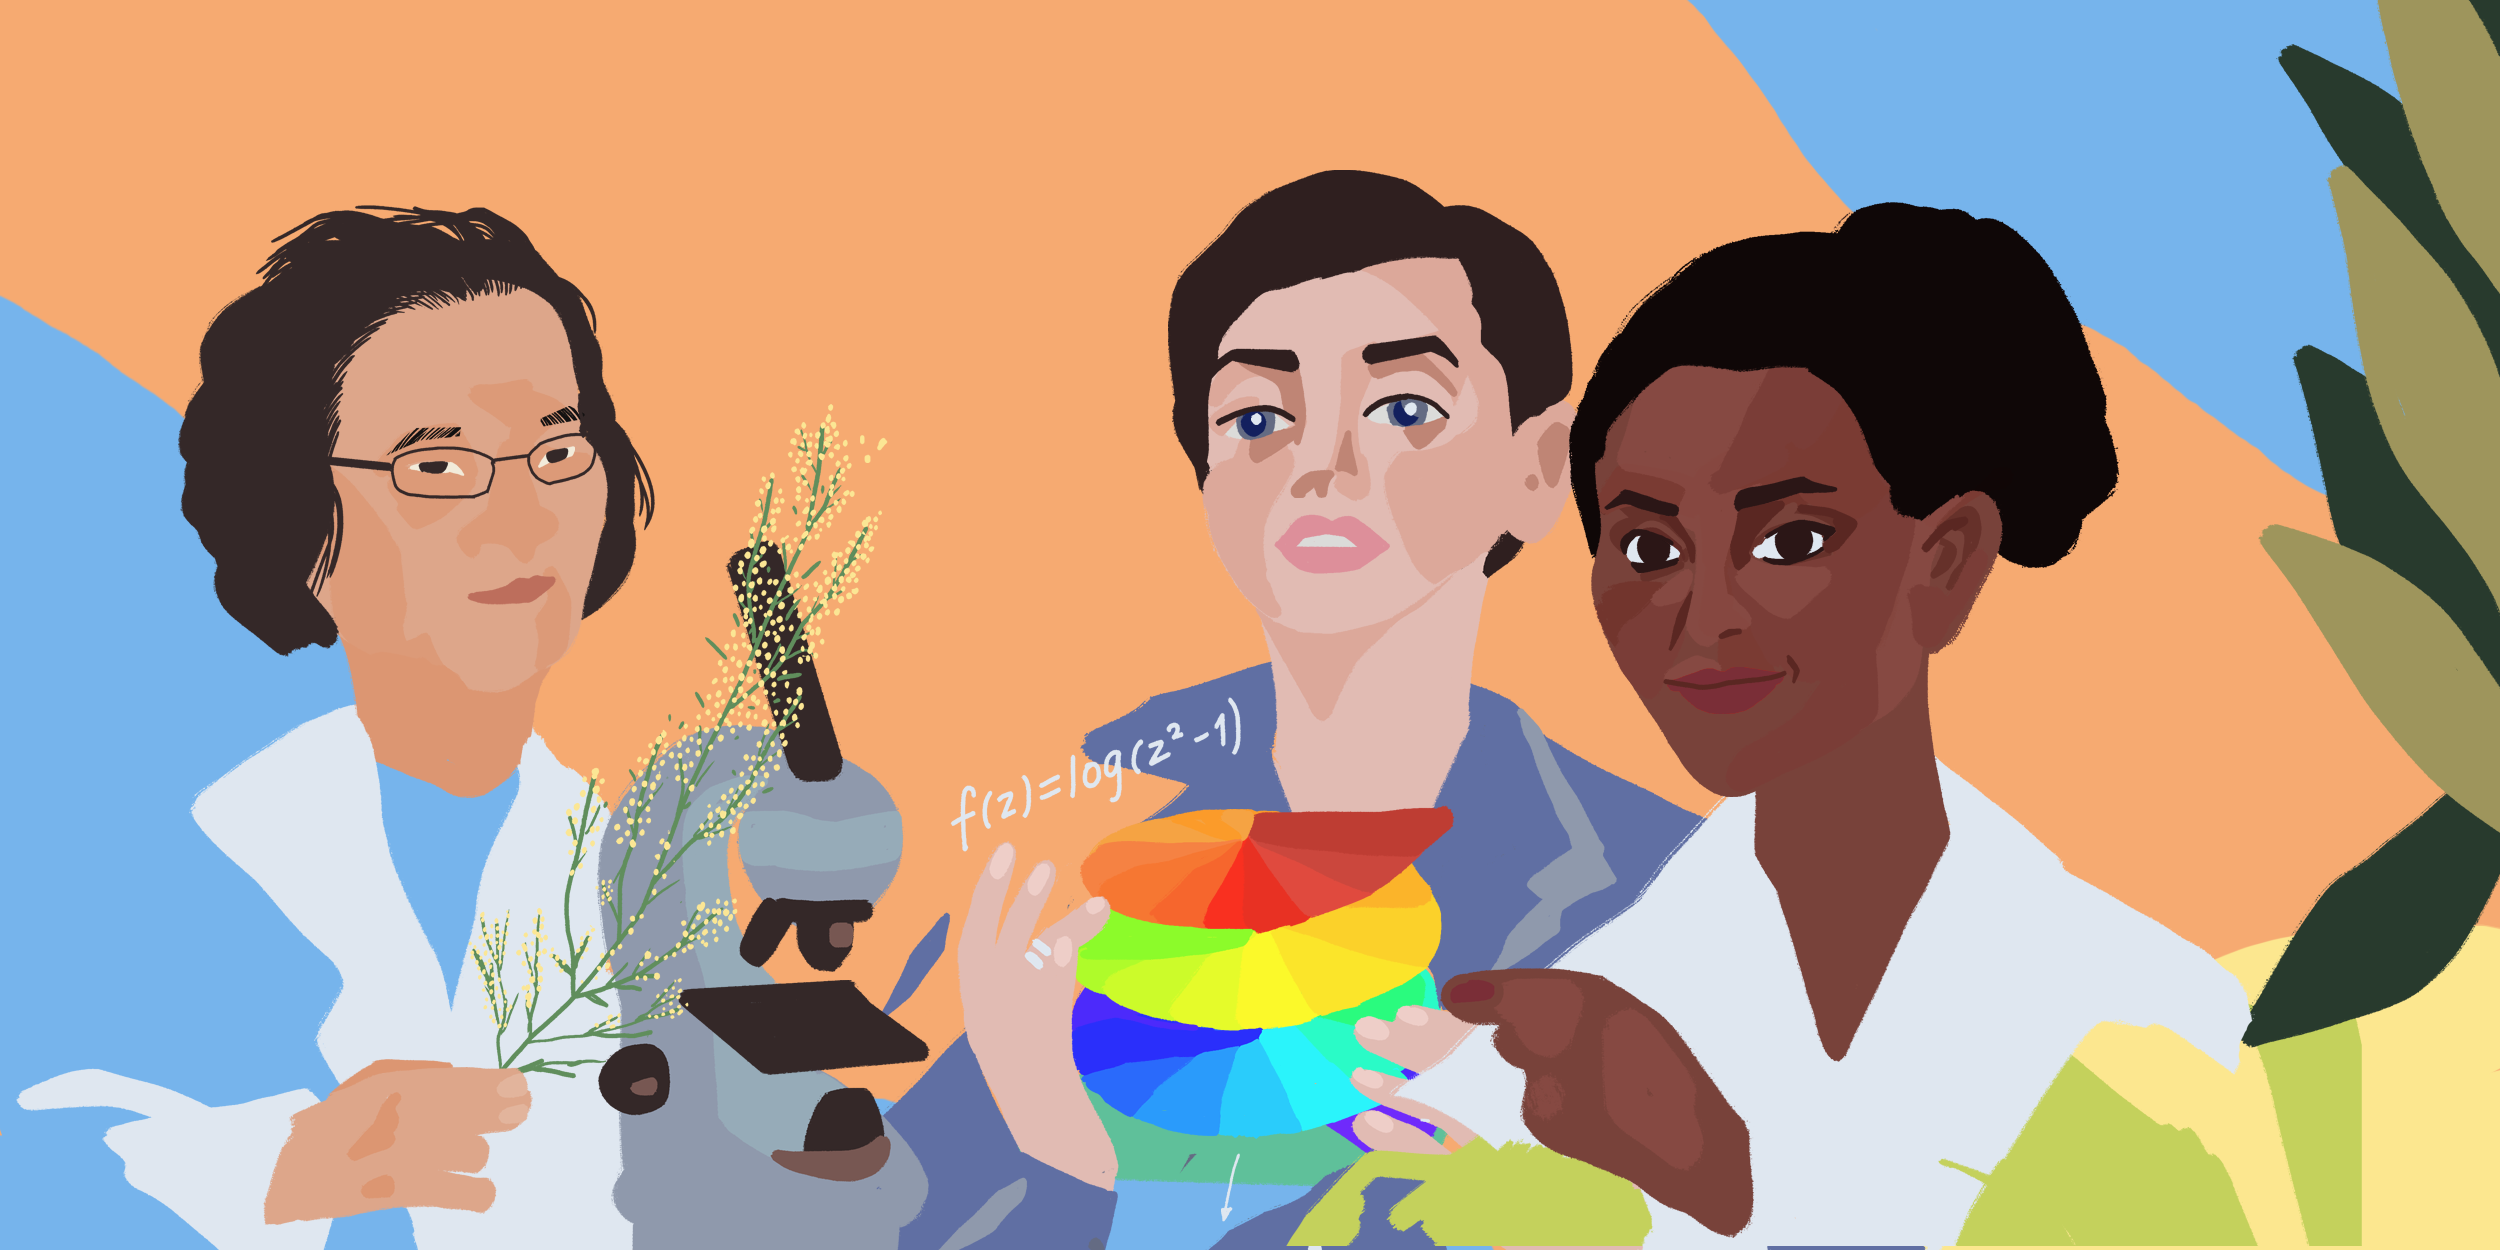 Illustration of women in science Tu Youyou, Maryam Mirzakhani and Segenet Kelemu